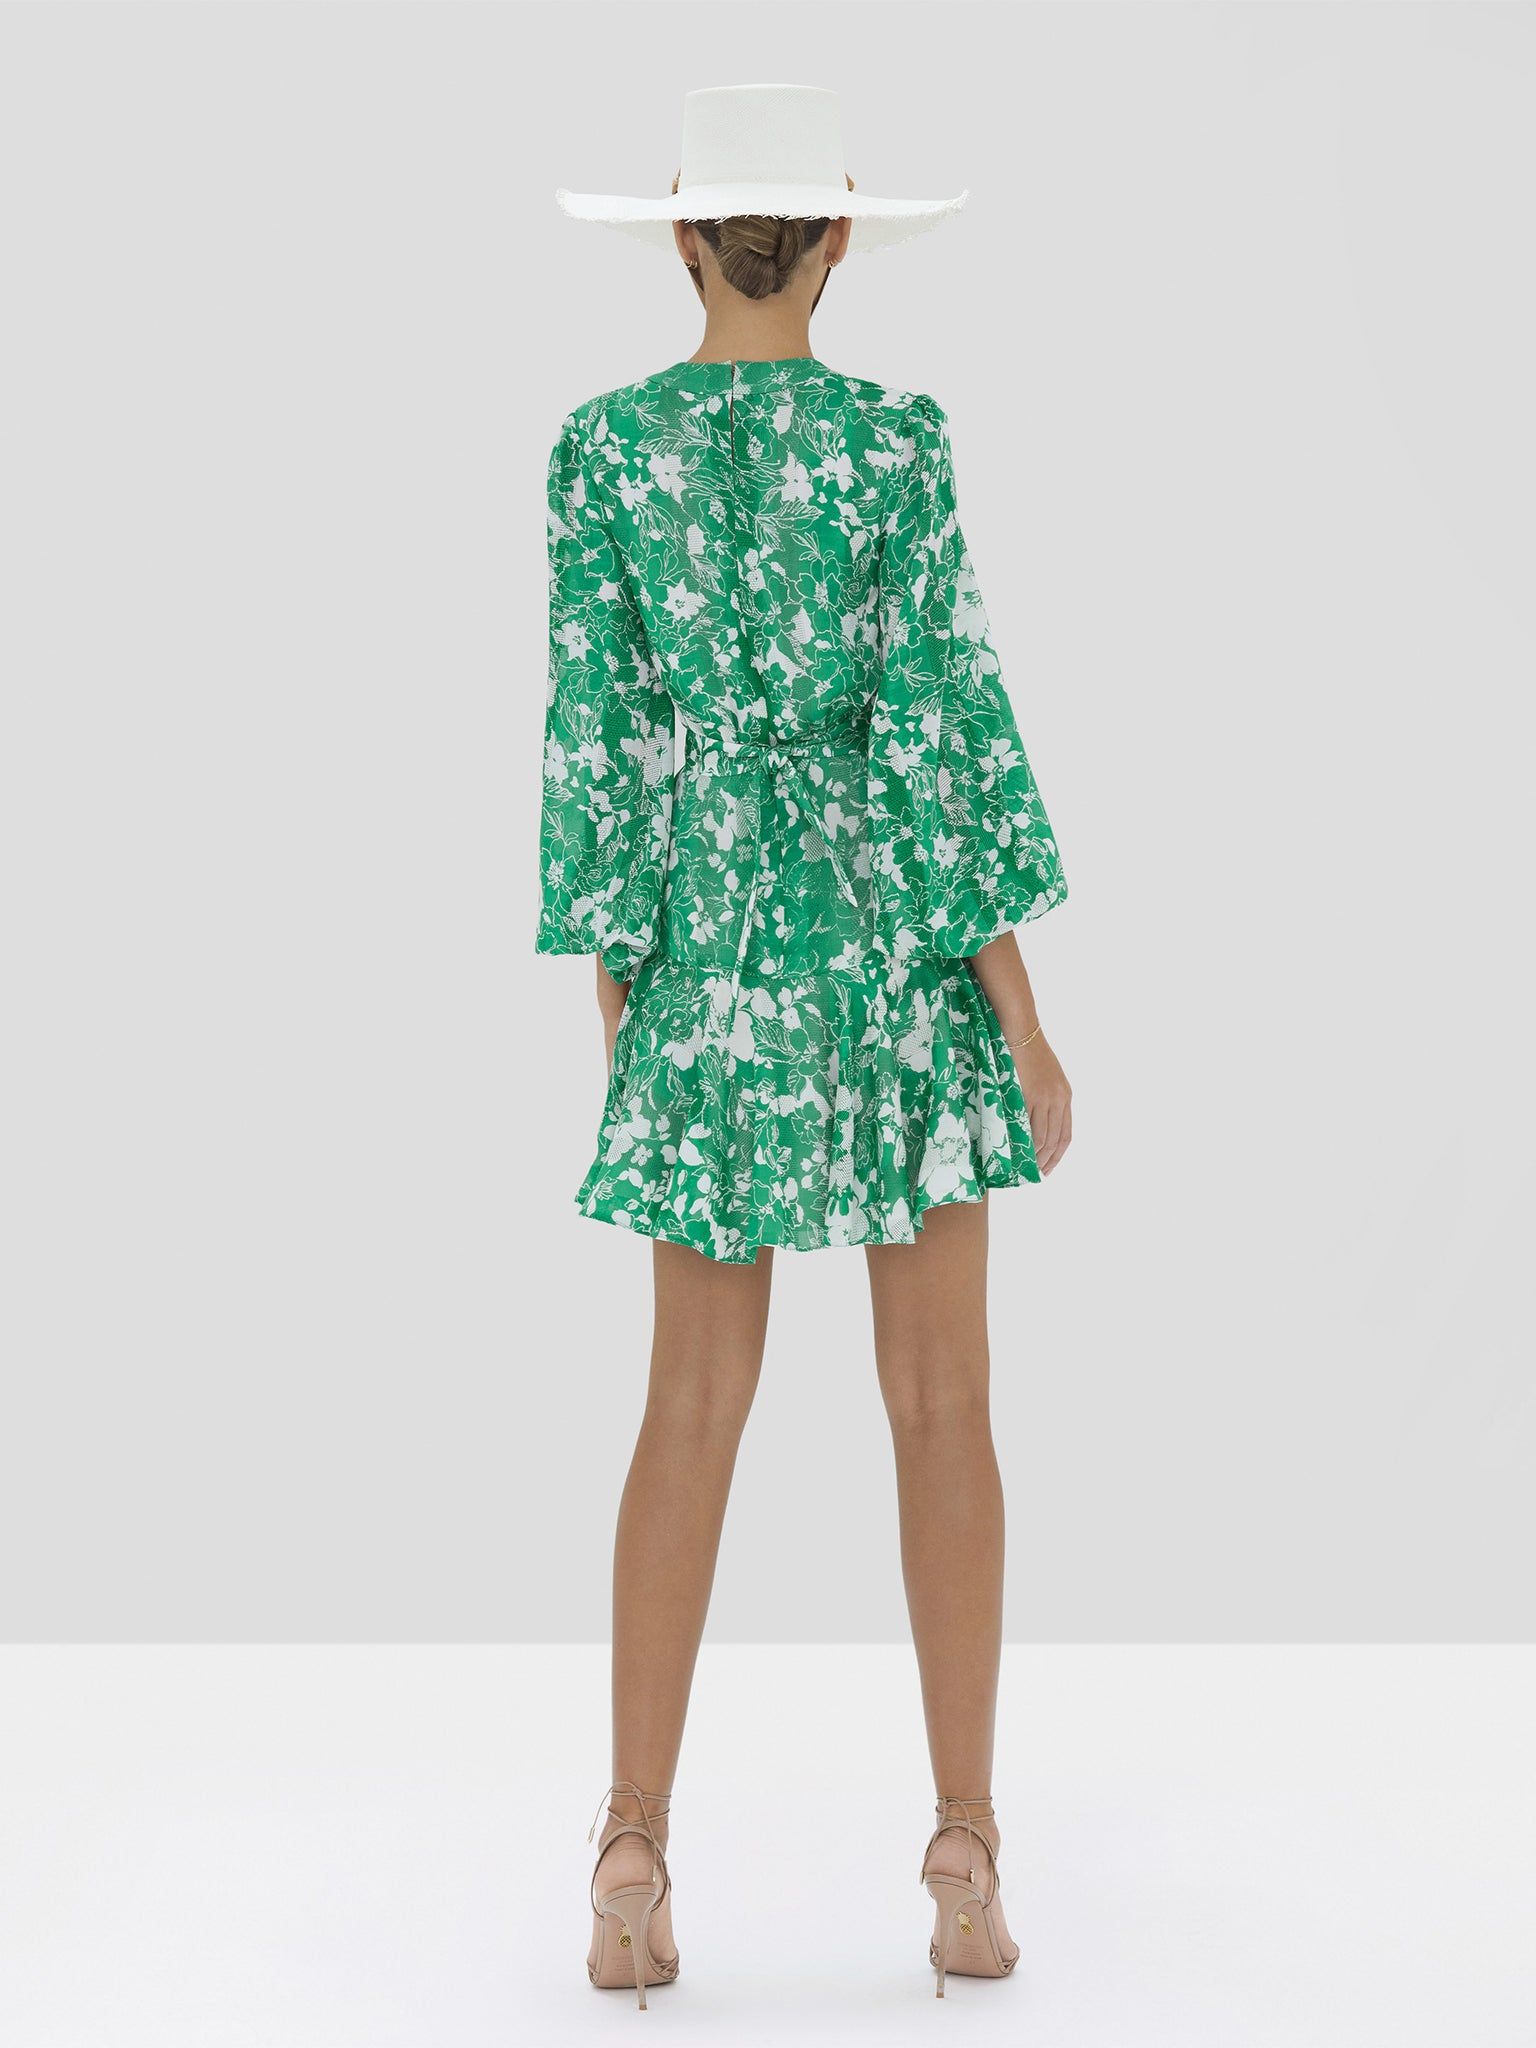 The Neala Dress in Emerald Floral from the Spring Summer 2020 Ready To Wear Collection. - Rear View